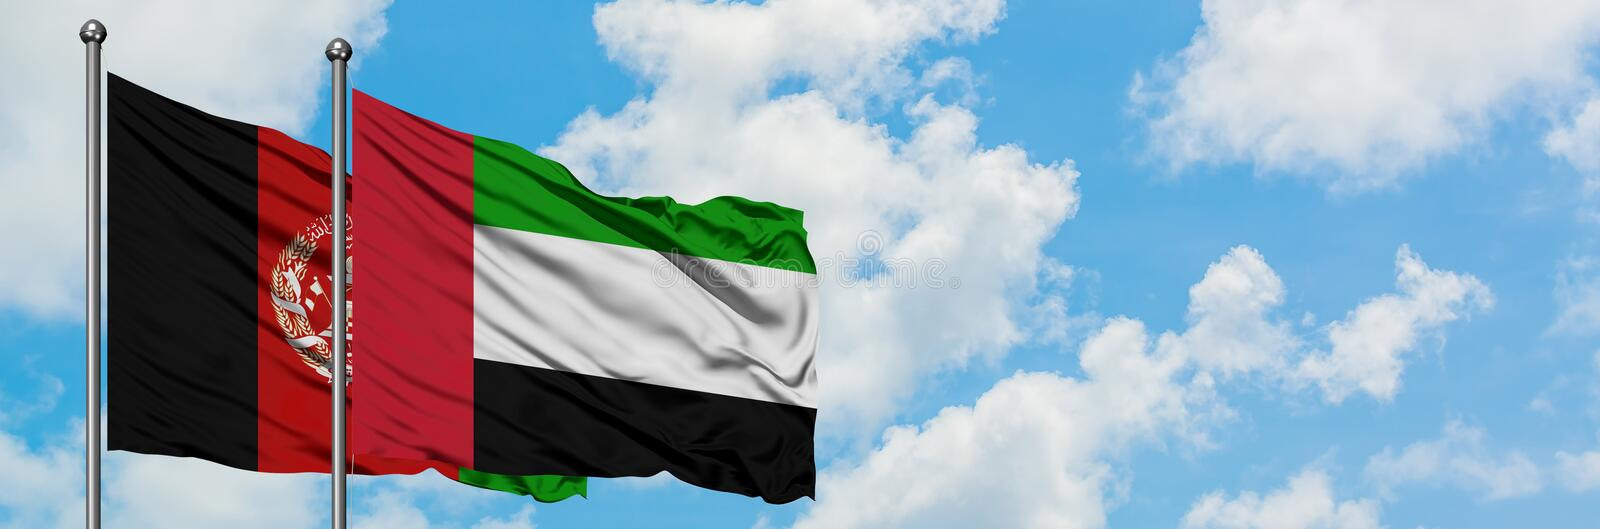 Afghanistan and United Arab Emirates flag waving in the wind against white cloudy blue sky together. Diplomacy concept,. International relations royalty free stock photo